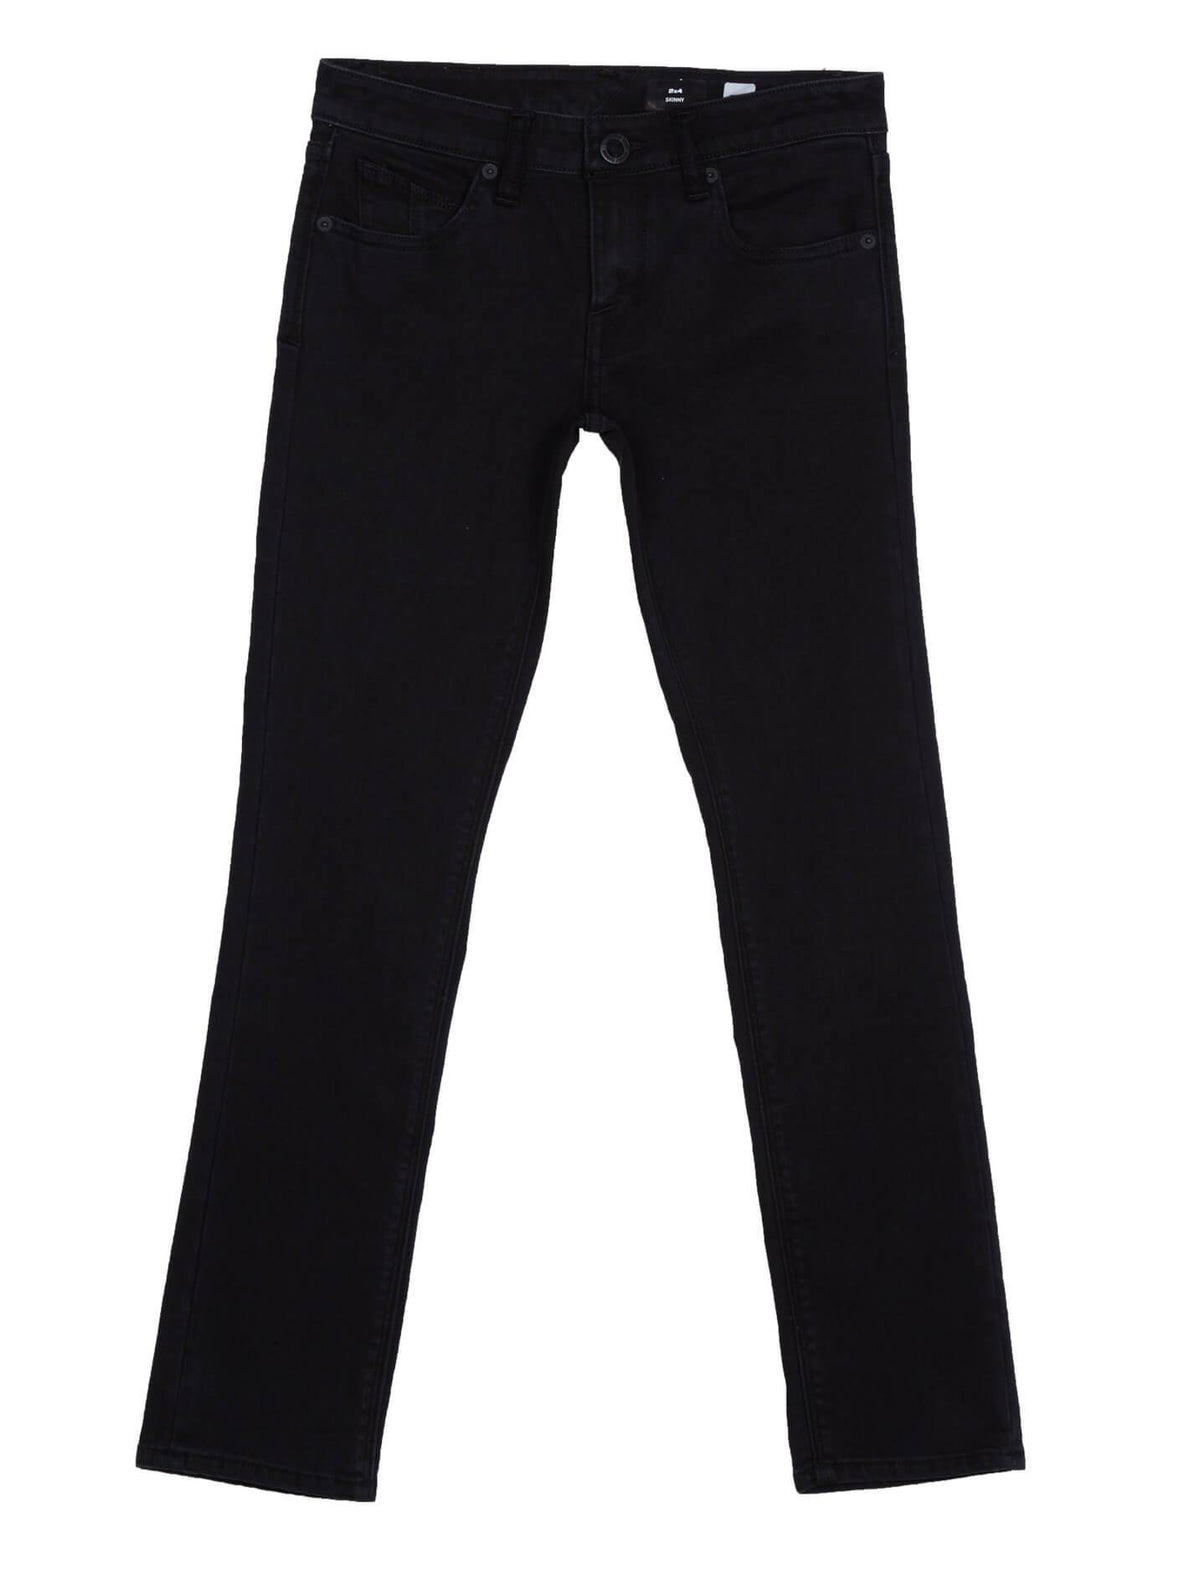 2x4-by-denim-ink-black(Kids)